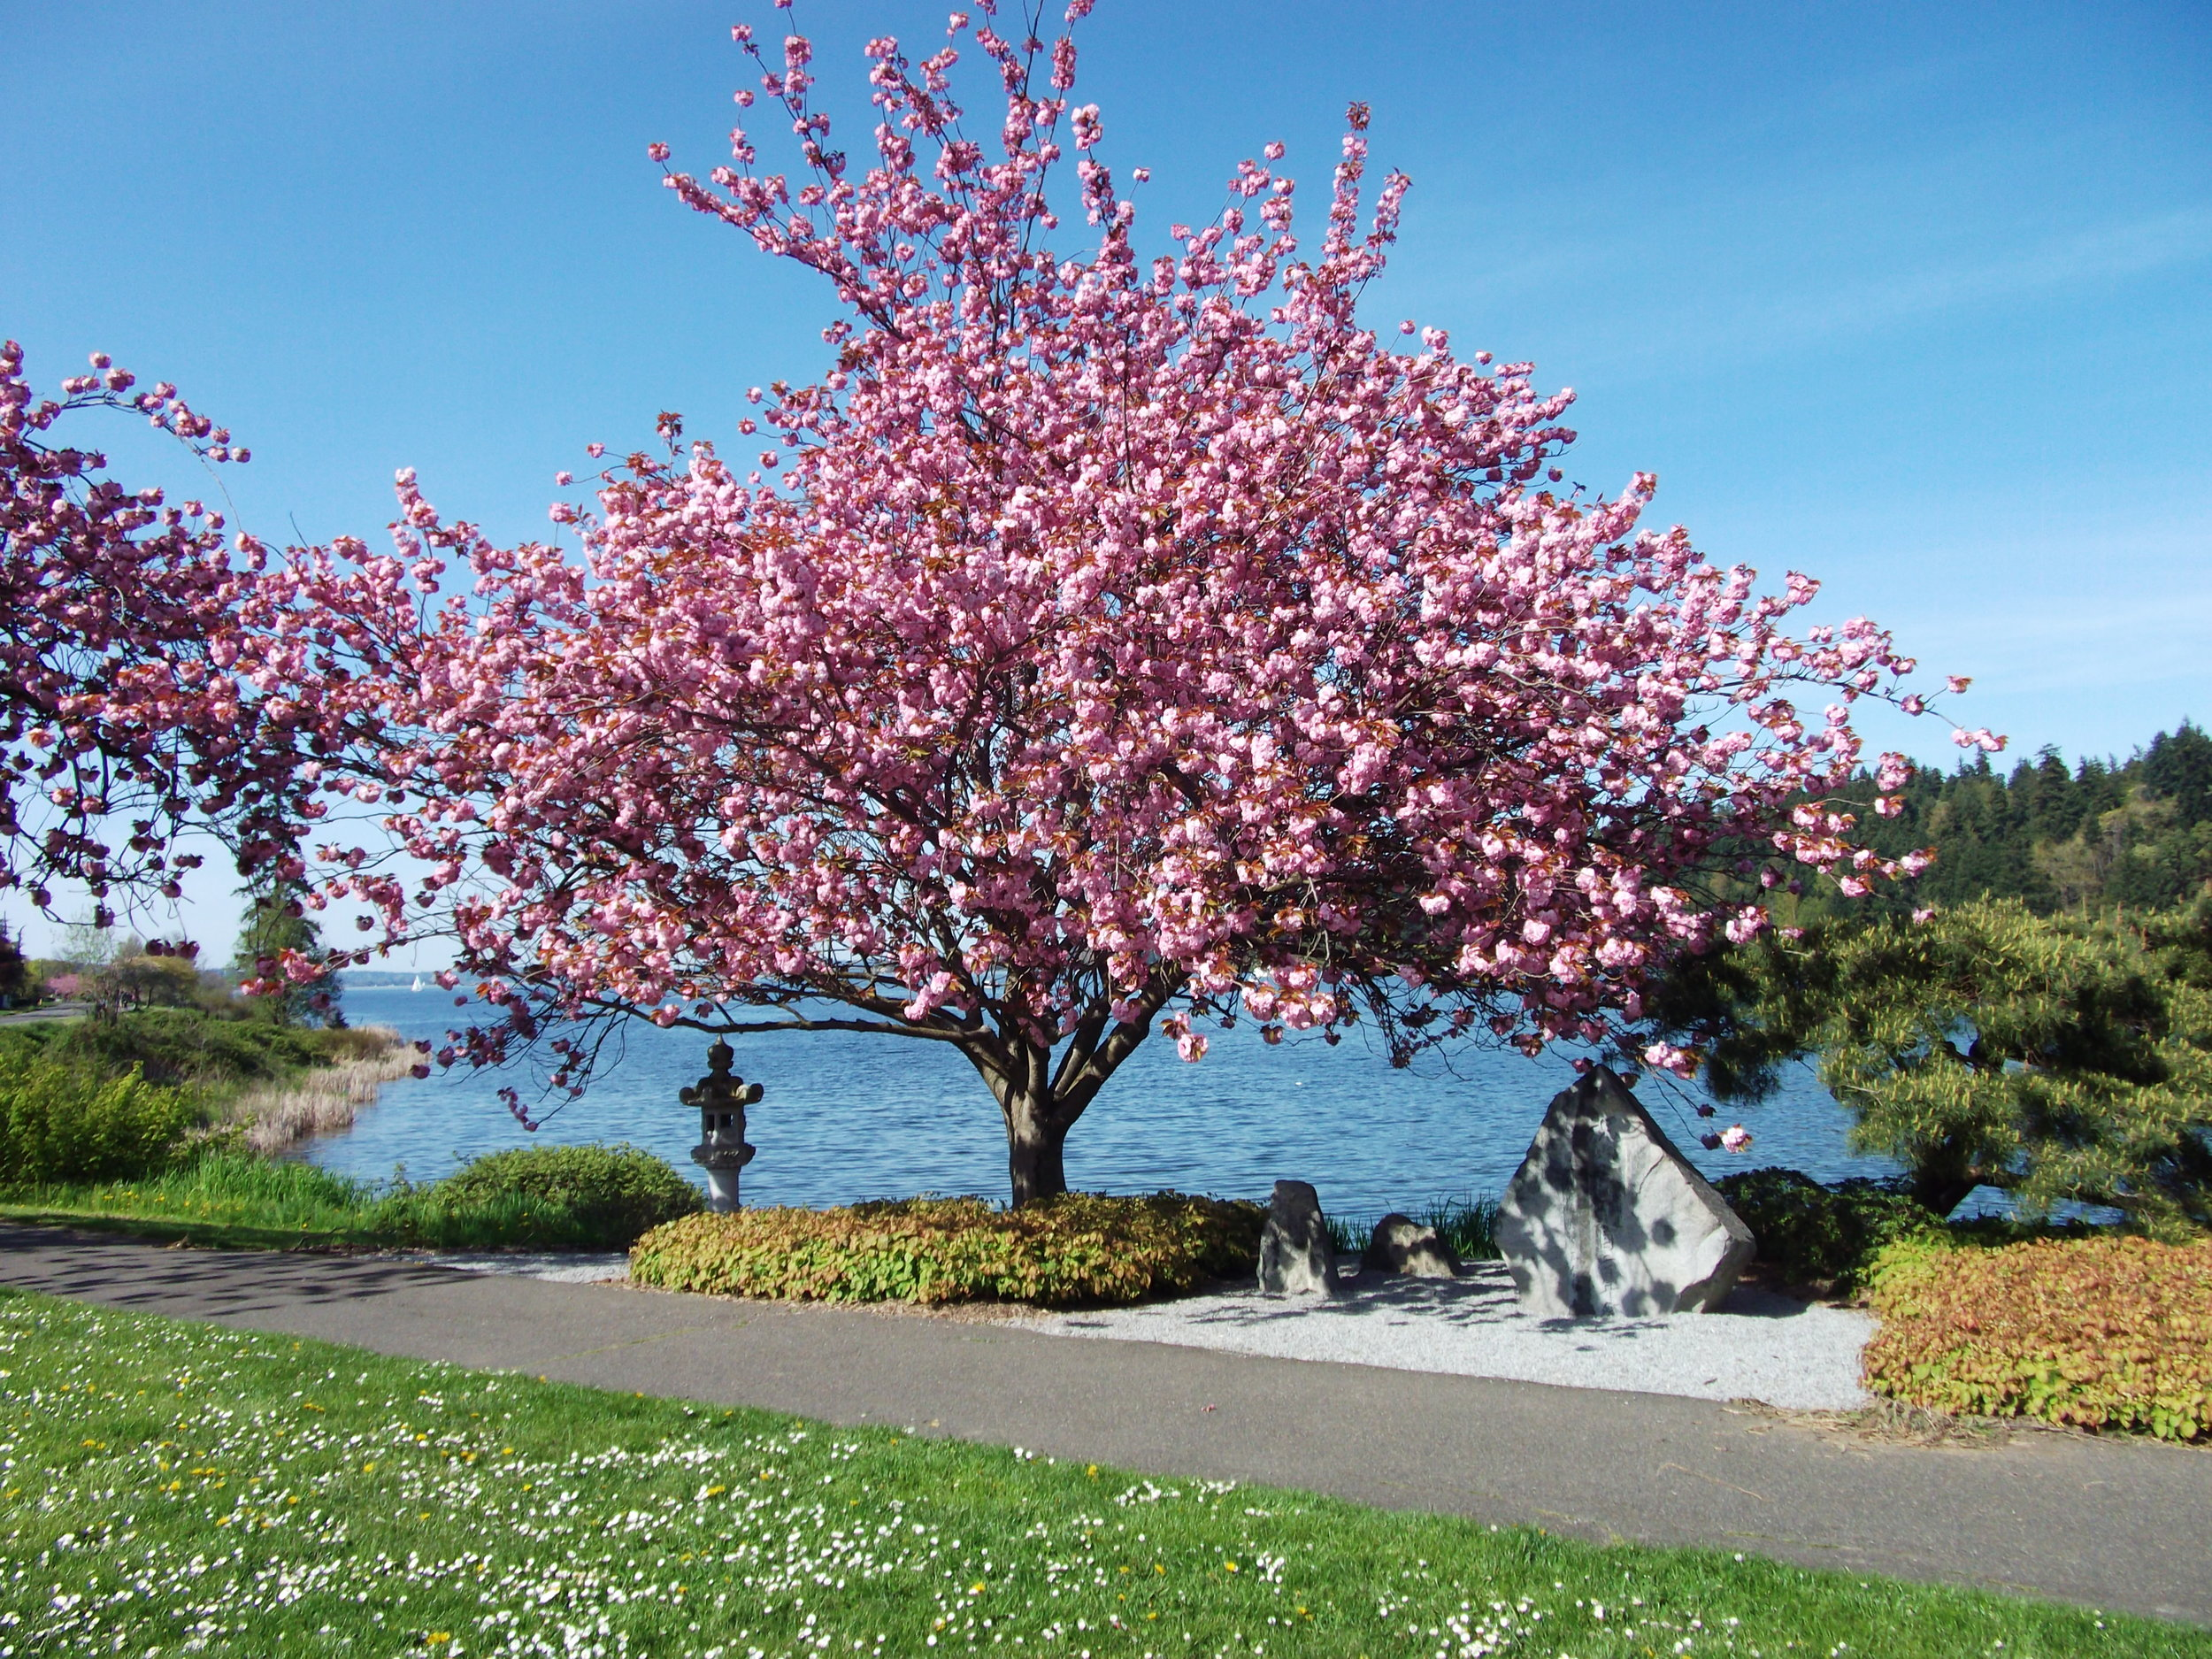 Cherry tree in full bloom in Seward Park. Photo:  Nirvananow / Wikimedia